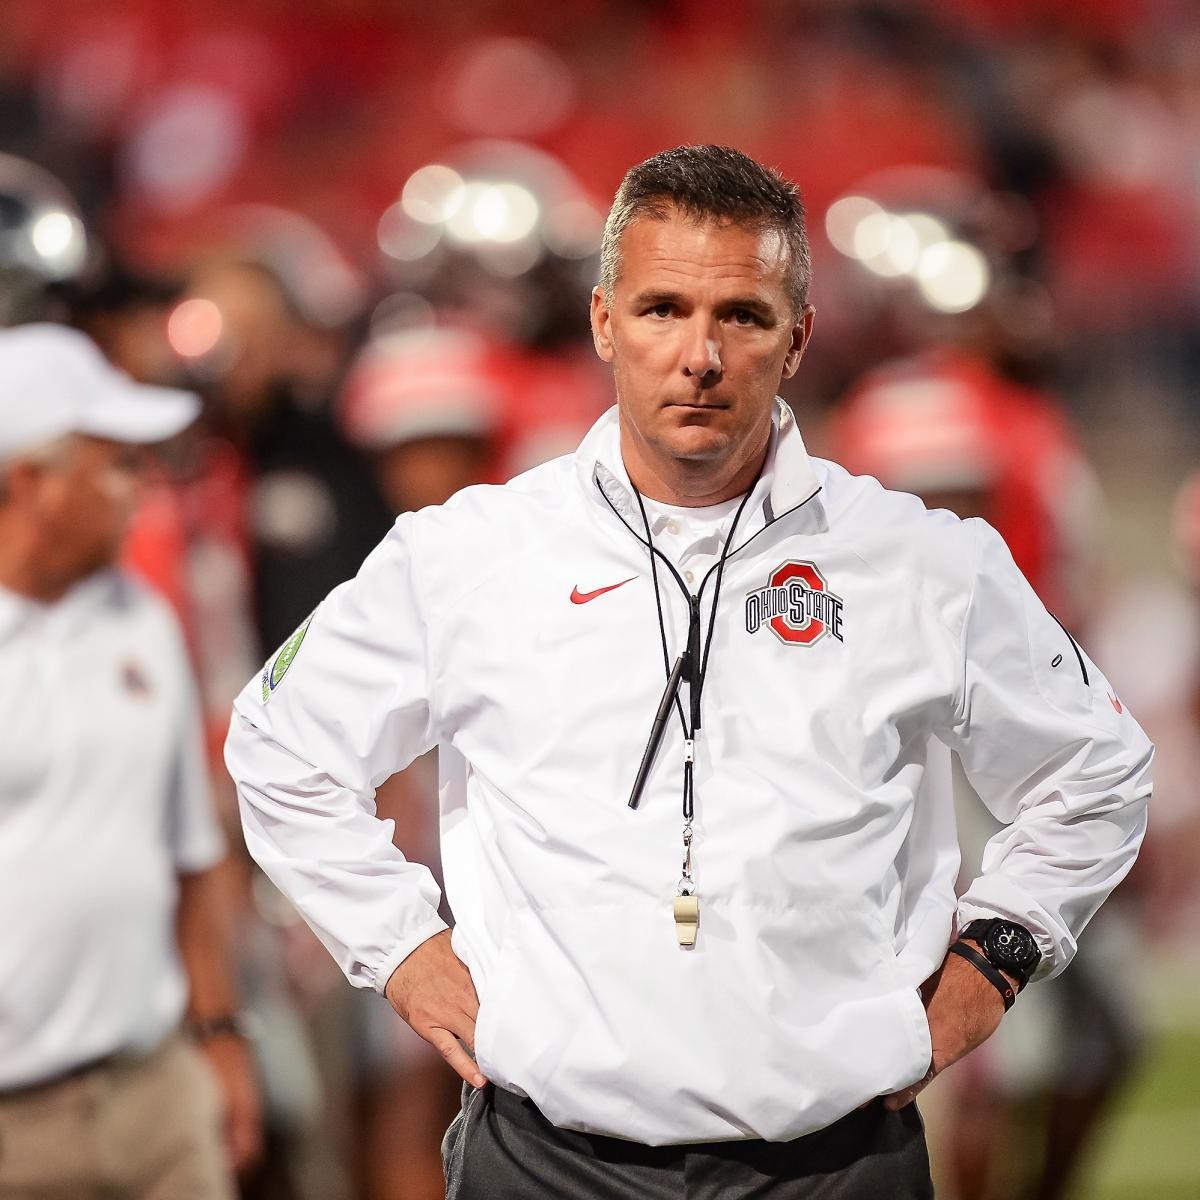 Ohio State Football Recruiting: Updates on 2014 Commits ...